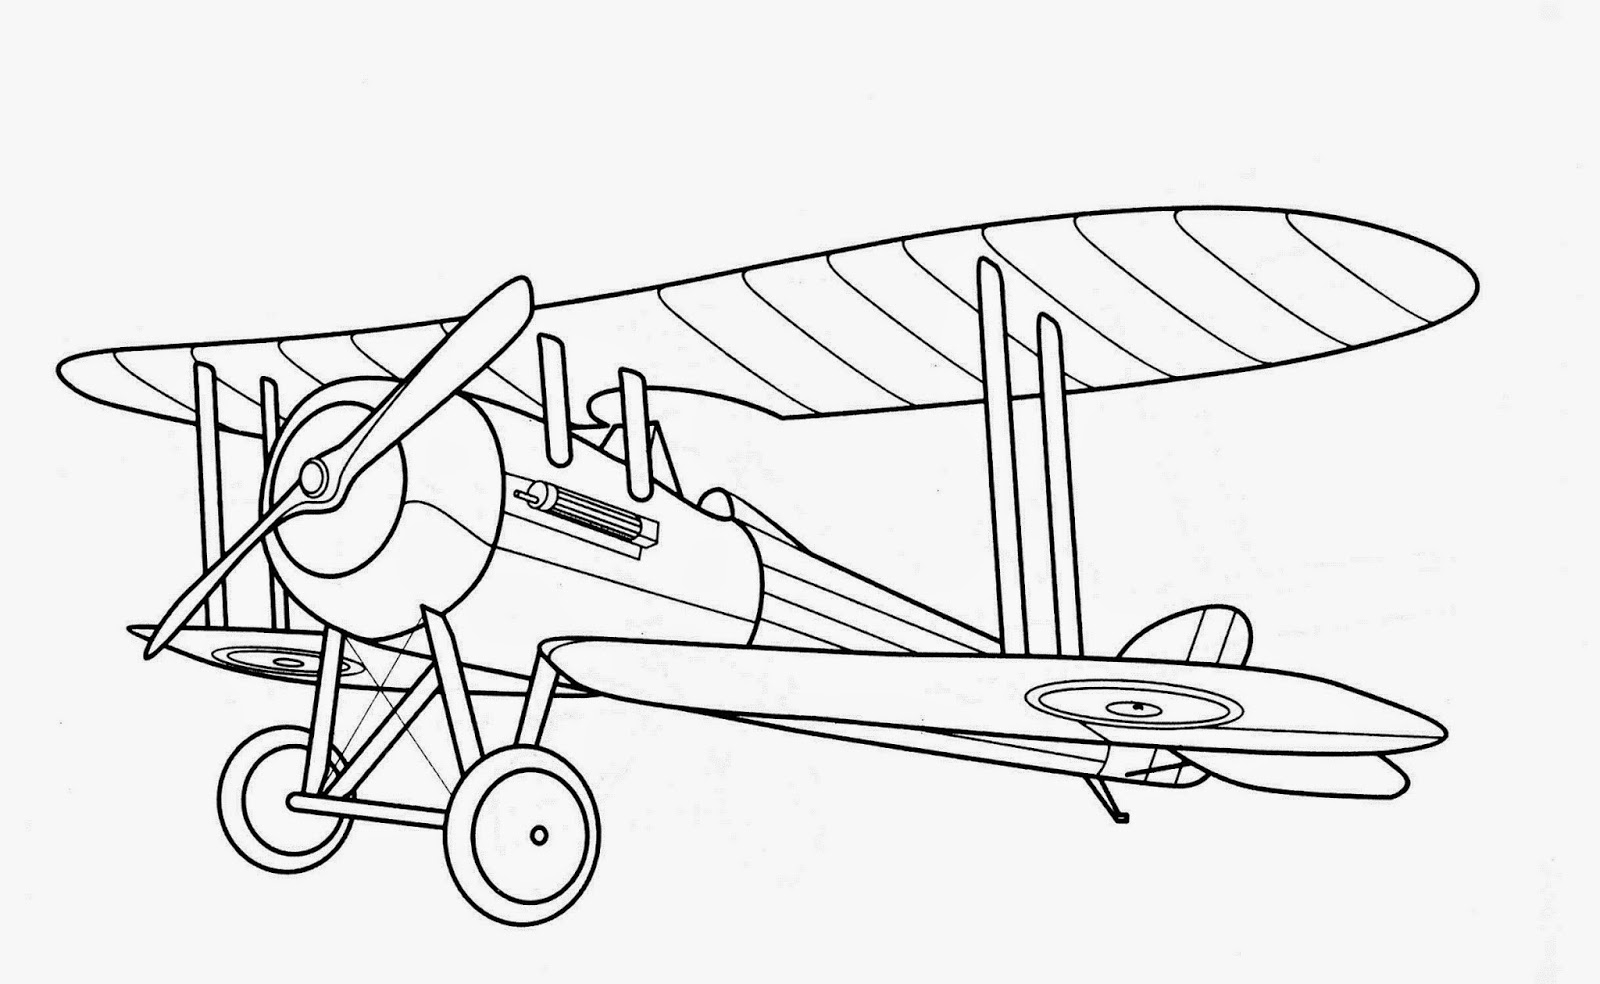 Biplane Coloring Pages